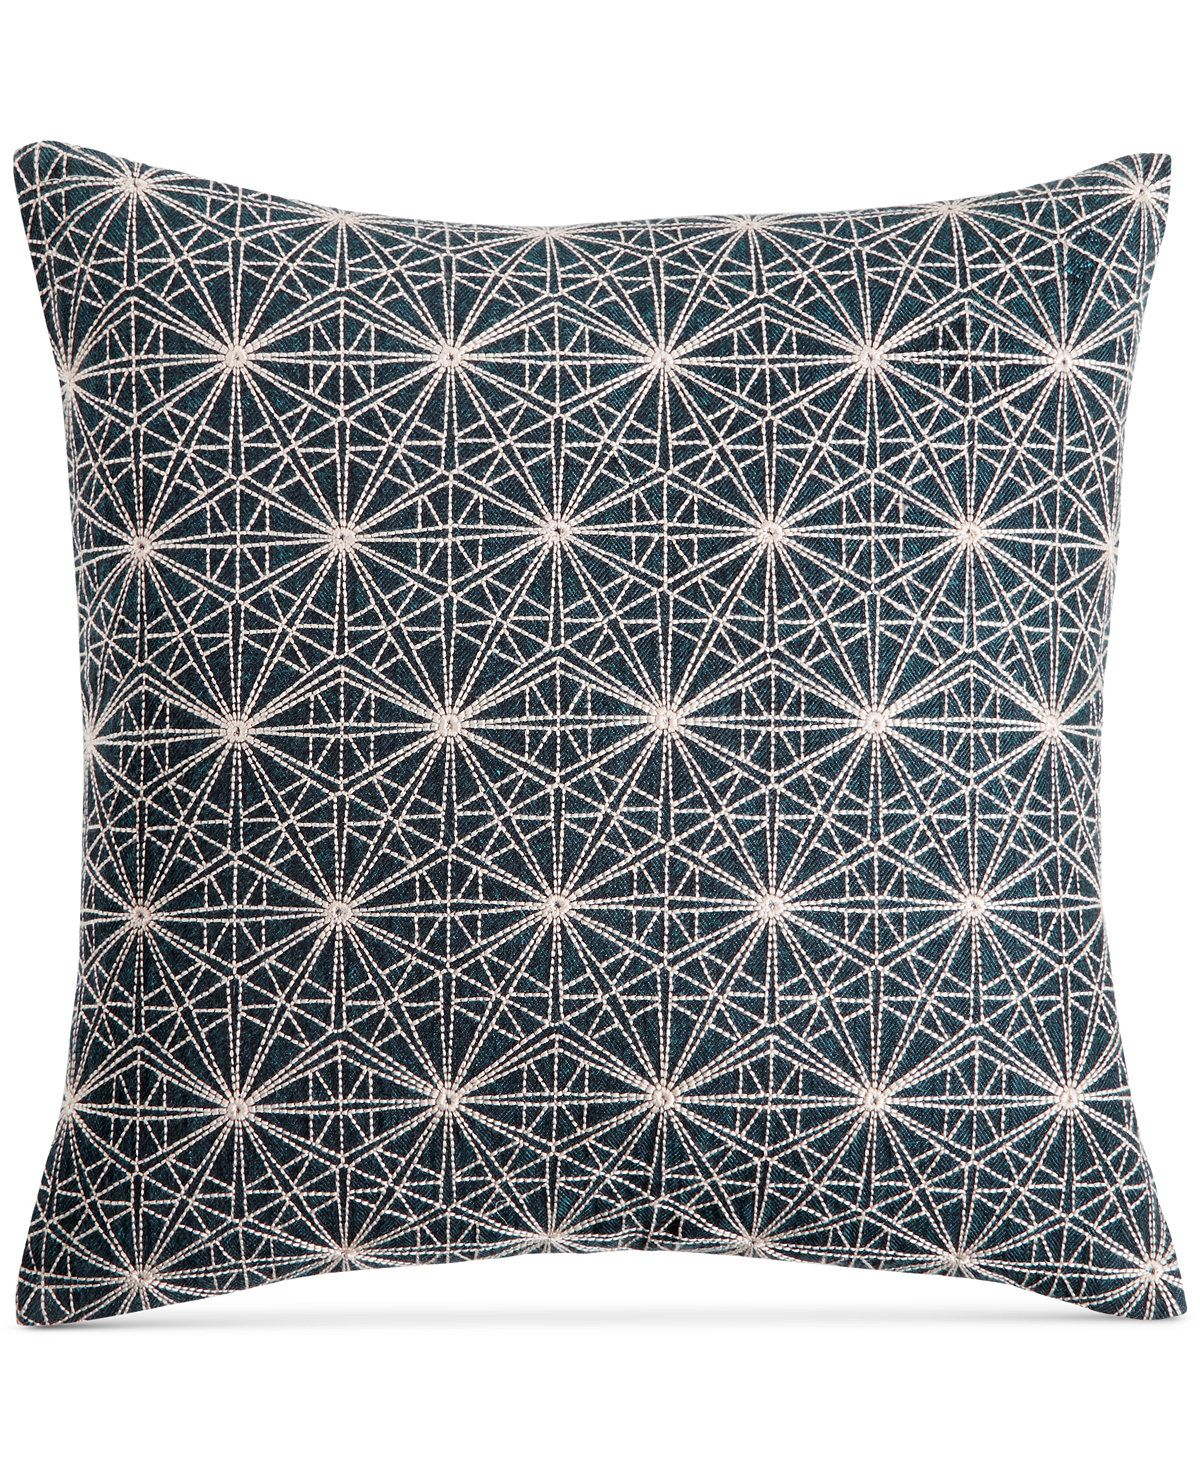 "Macy's Decorative Pillows Gorgeous Hotel Collection Modern Wave 18"" Square Decorative Pillow Created Design Inspiration"